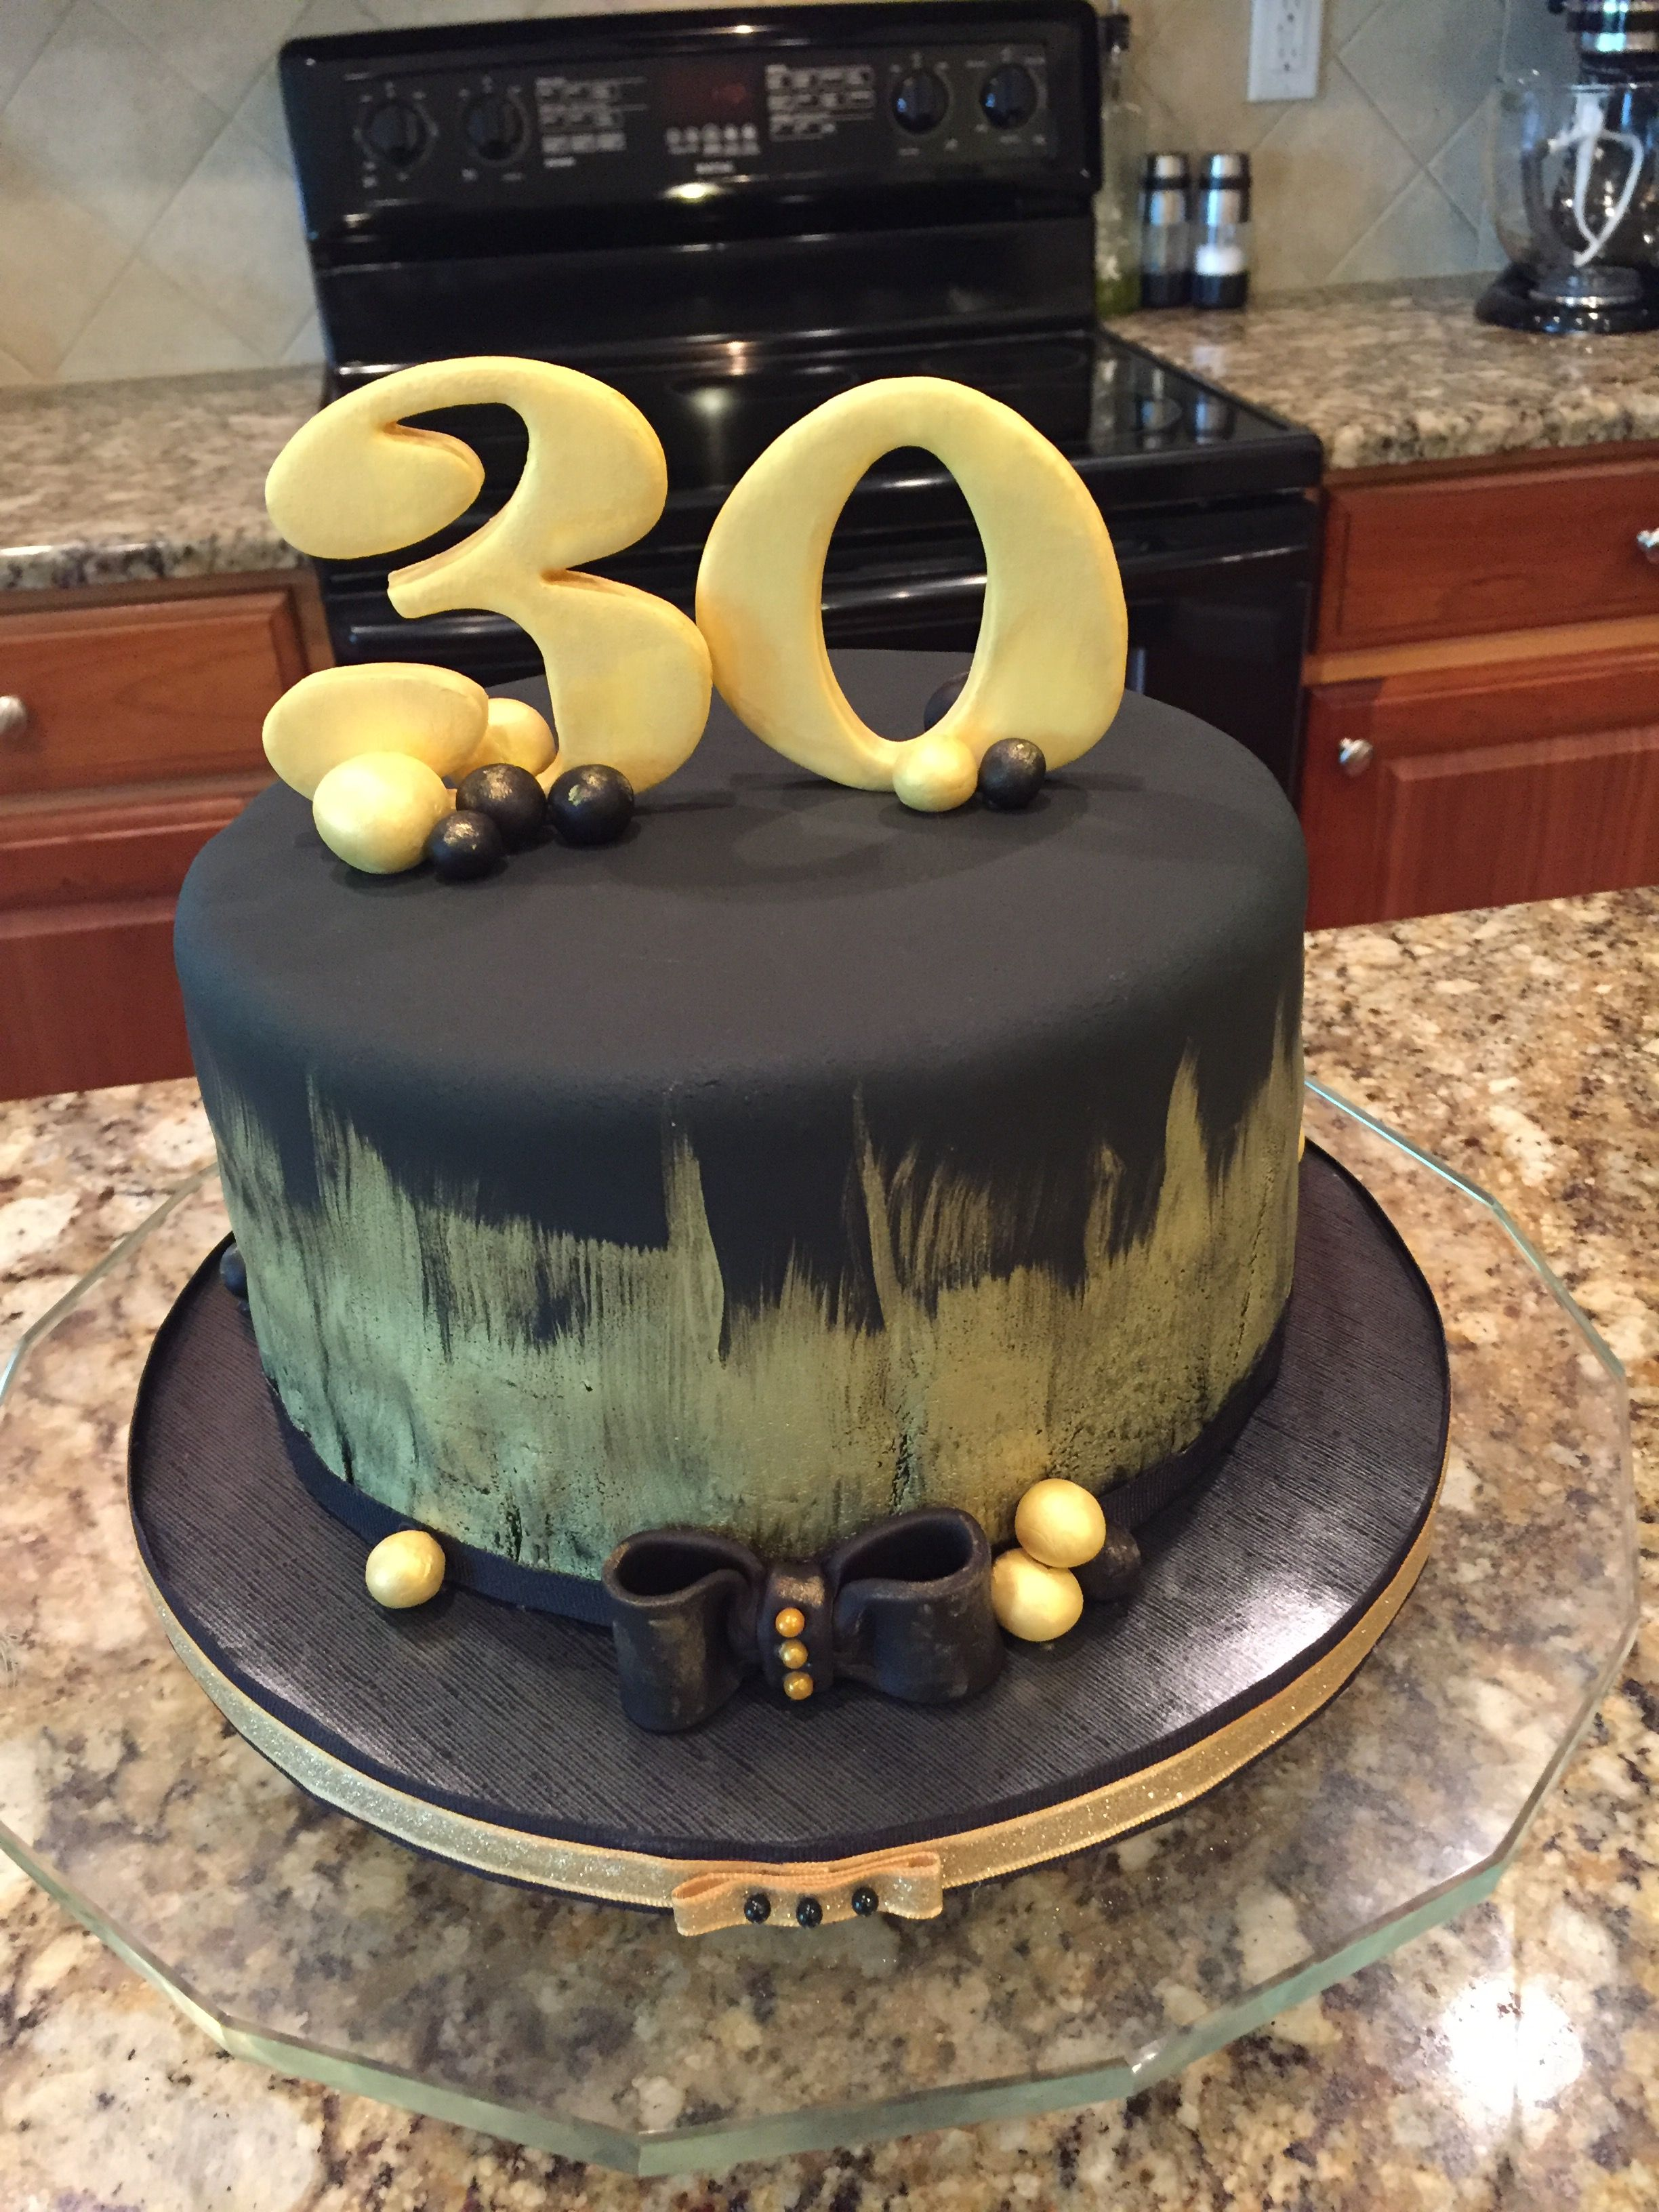 Painted In Edible Gold 30th Birthday Cake Dark Chocolate With Peanut Butter And Oreo Filling